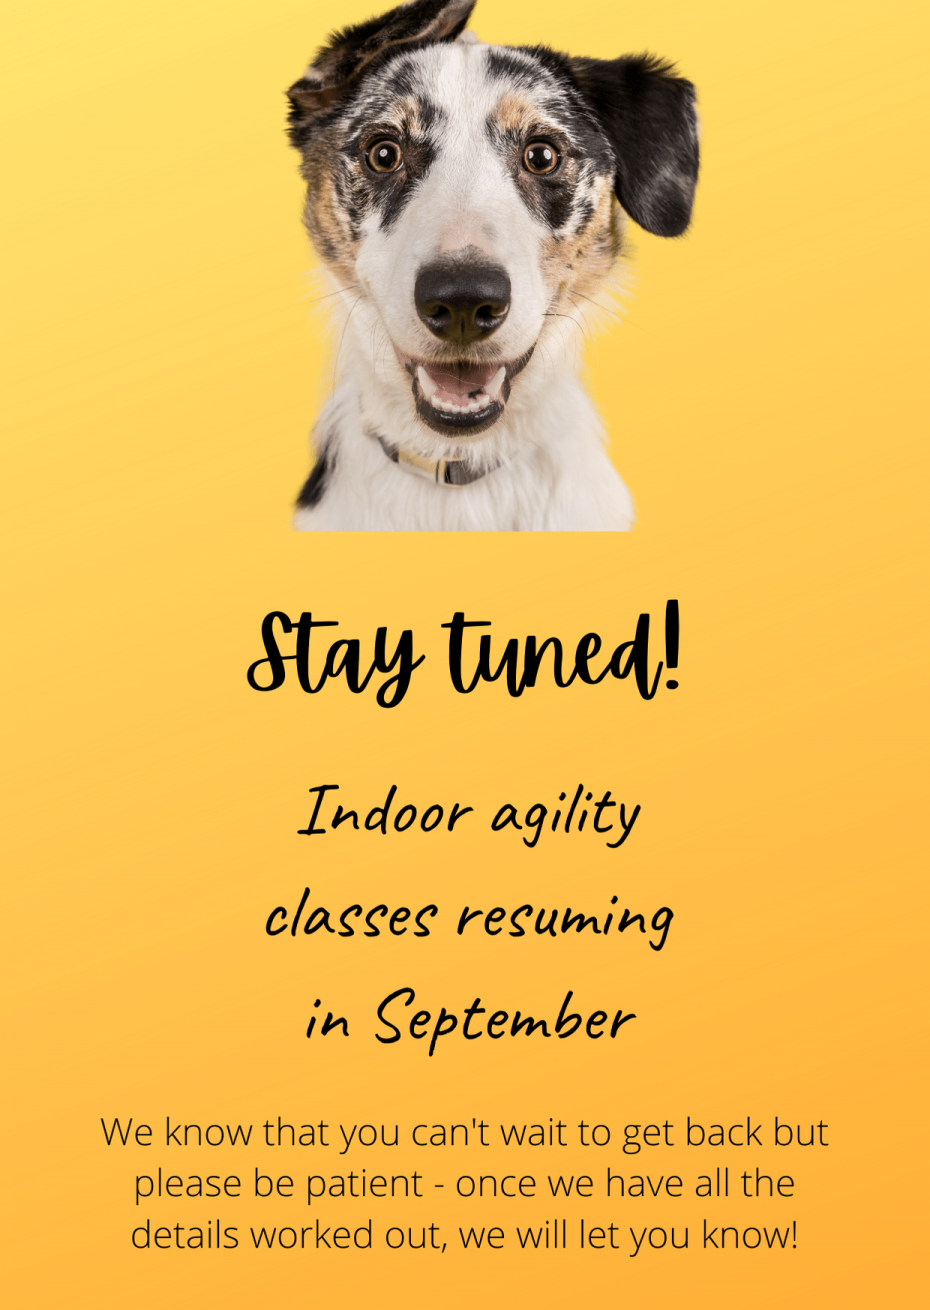 Agility training to restart in September